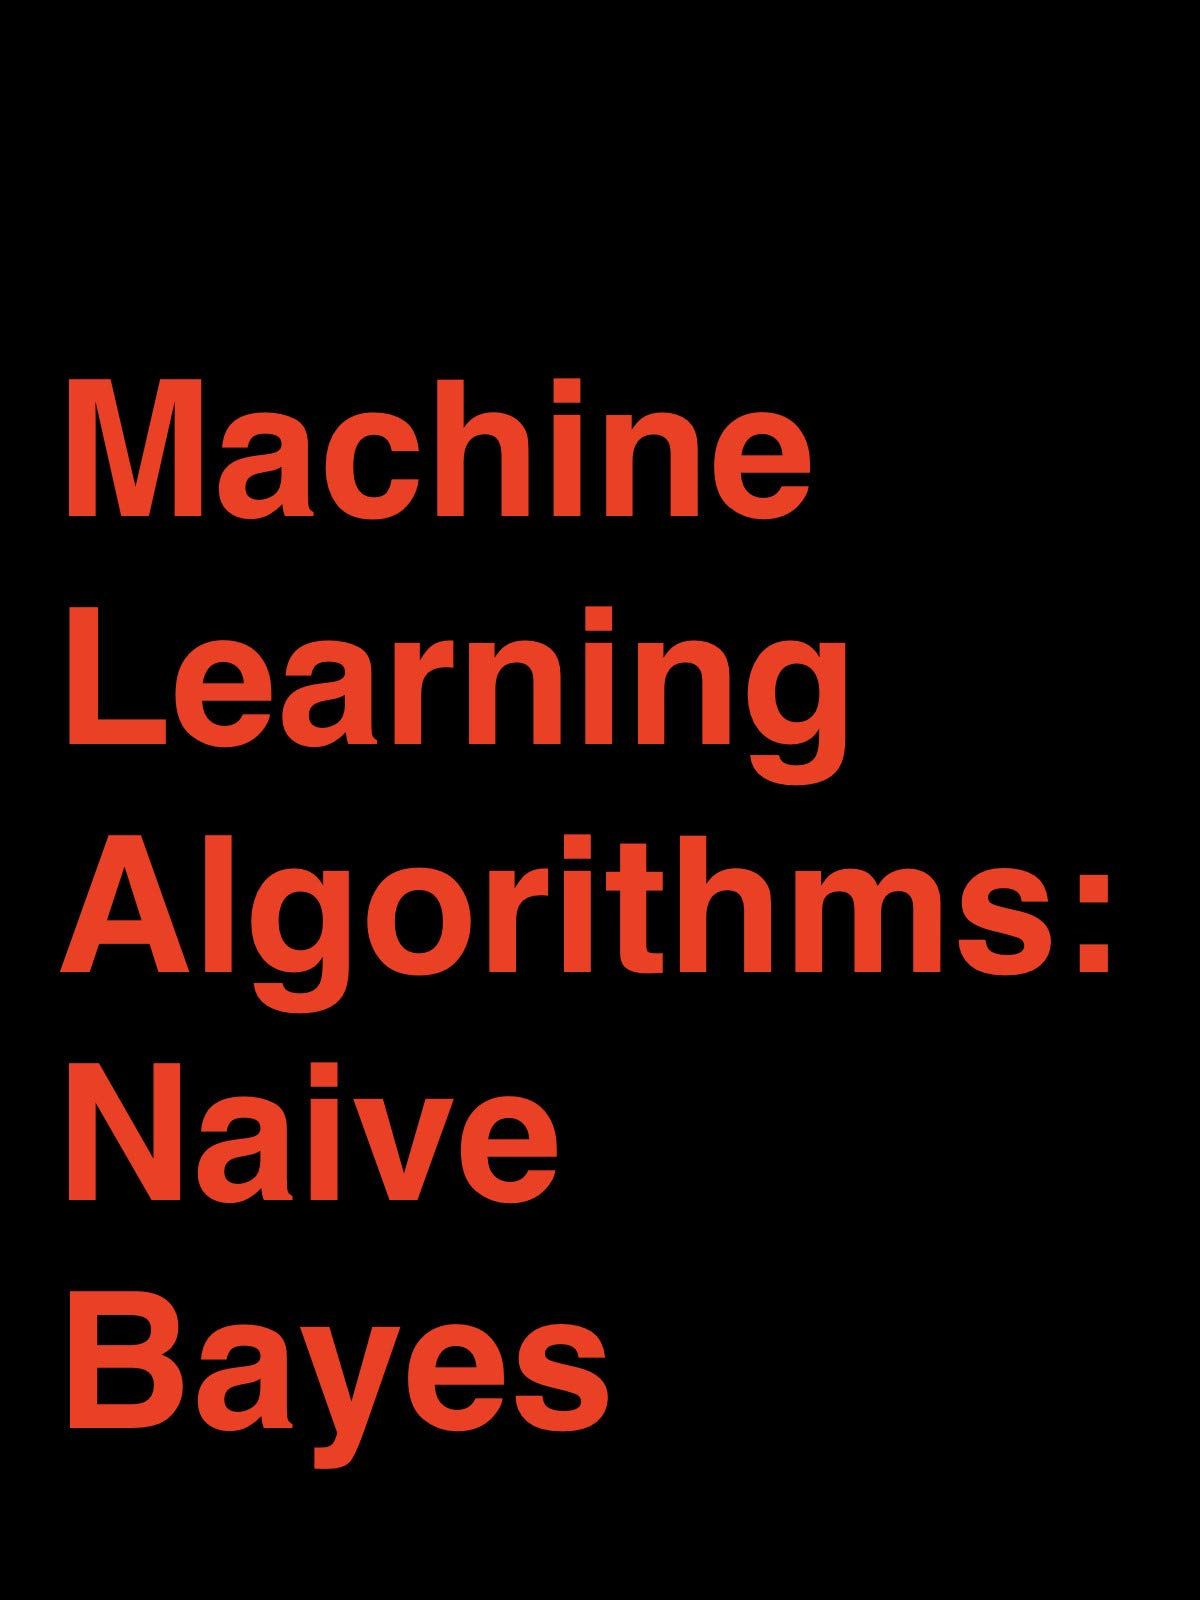 Machine Learning Algorithms: Naive Bayes